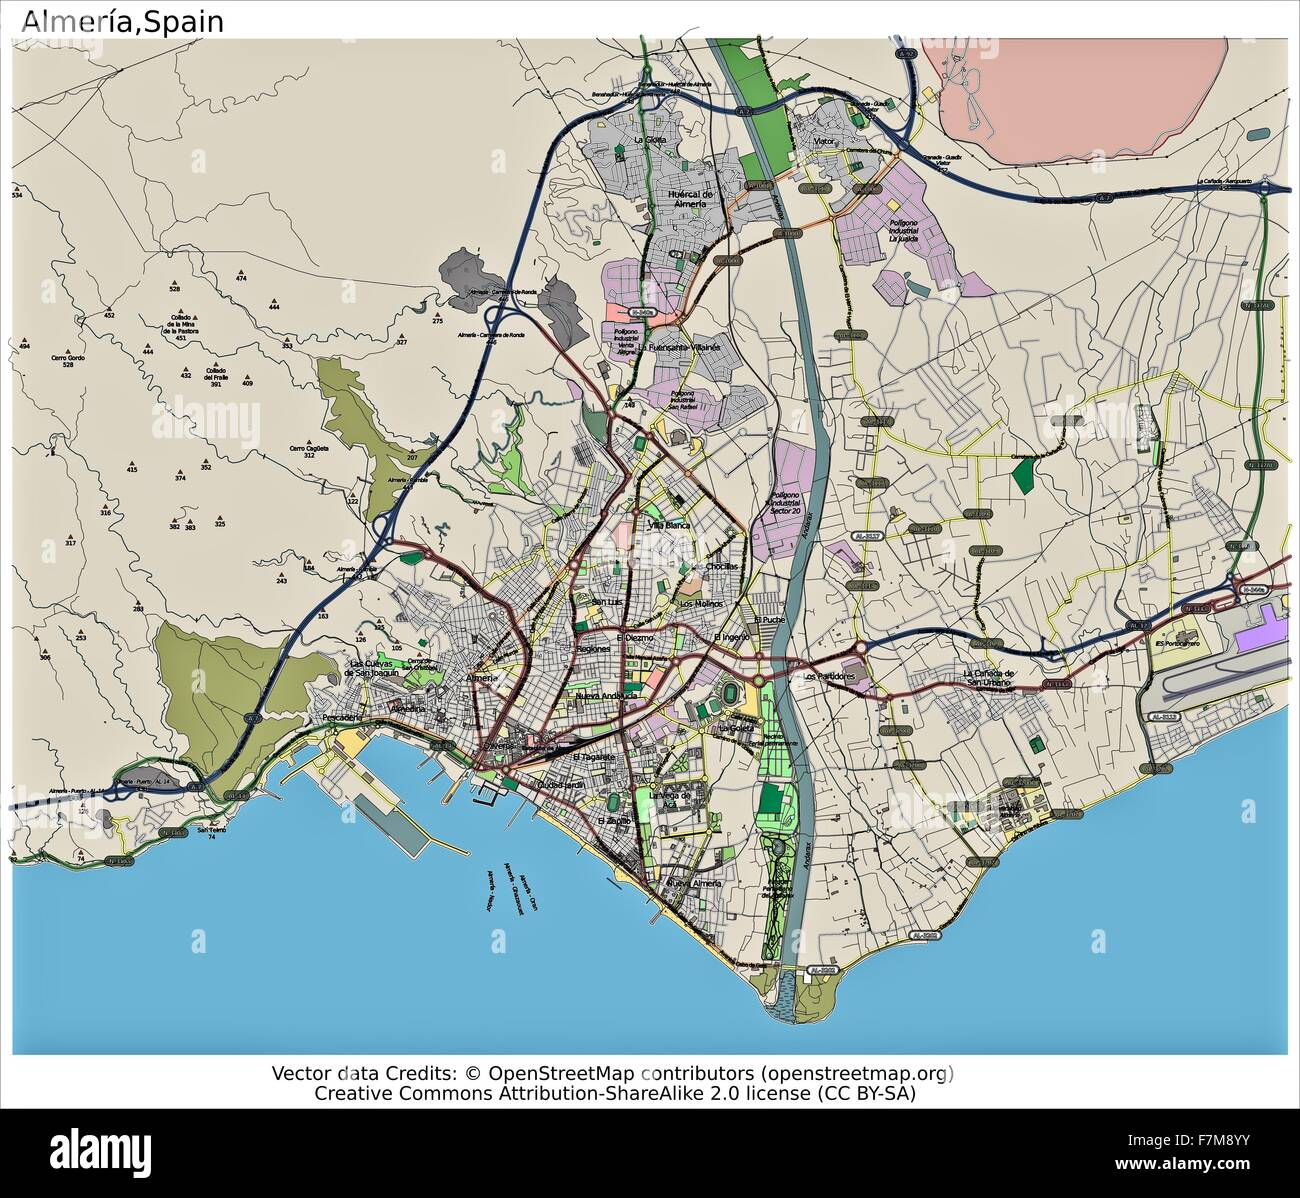 Map Of Spain Almeria.Almeria Spain City Map Stock Photo 90800527 Alamy